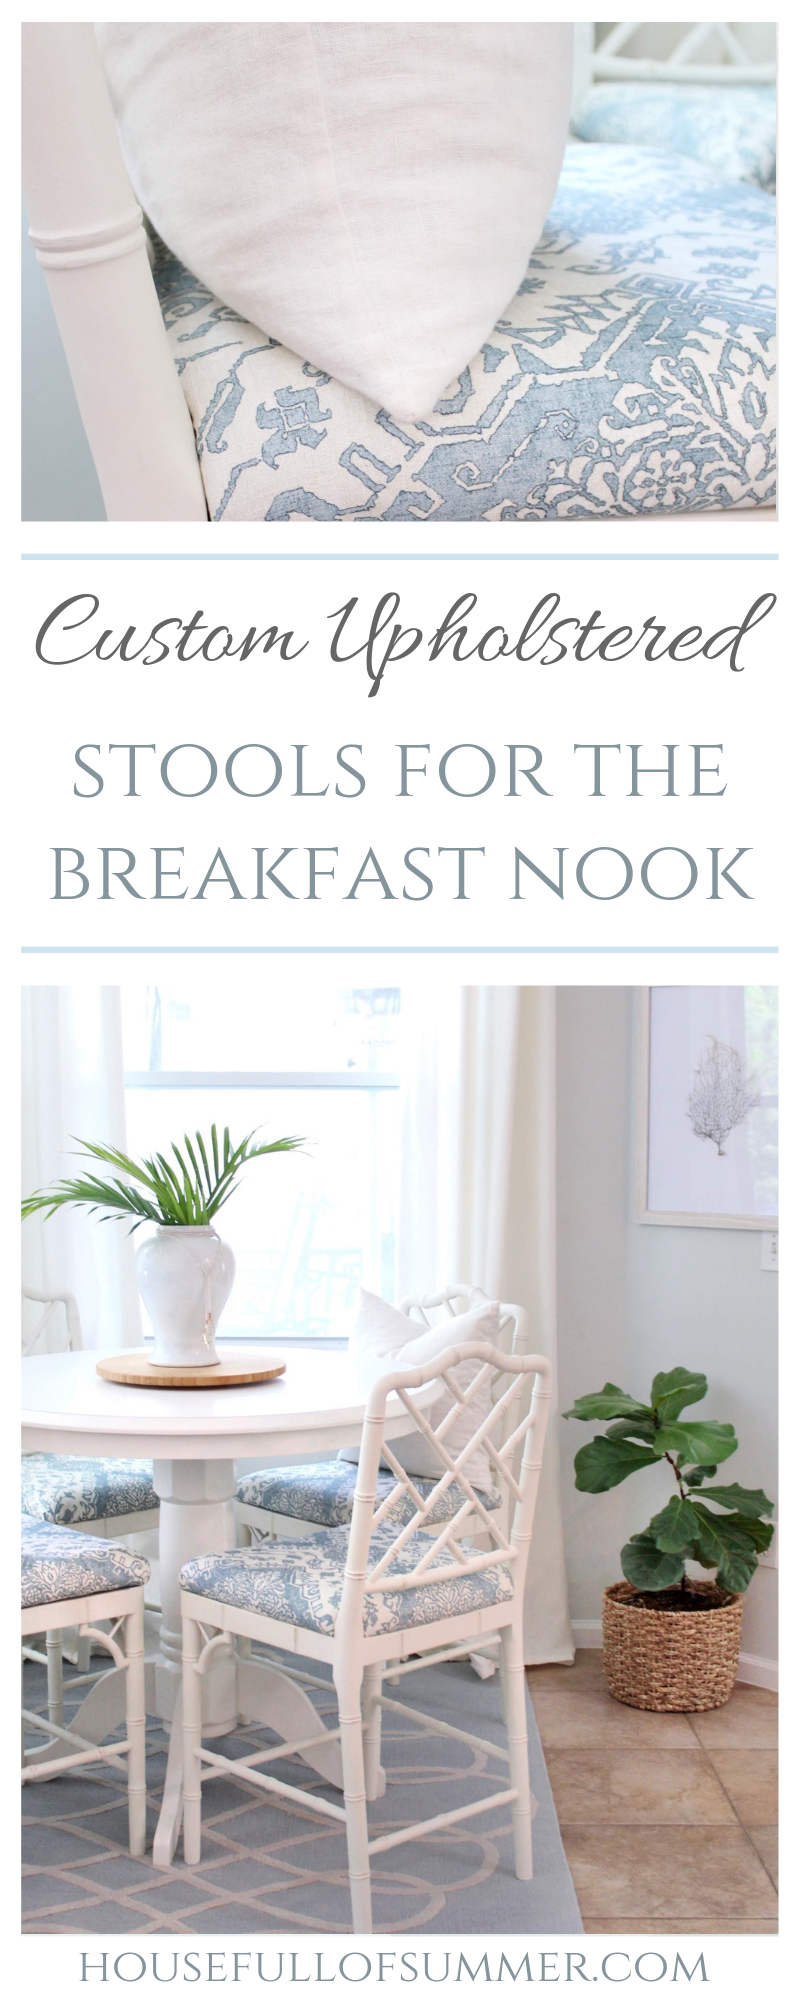 Custom Upholstered Stools for the Breakfast Nook   House Full of Summer Chinoiserie chic breakfast nook updates with custom upholstered chippendale style stools in partnership with Ballard Designs. bamboo chairs, bar stools, benches, ottomans, kitchen table dining room coastal elegant traditional decor blue and white #housefullofsummer #sponsored